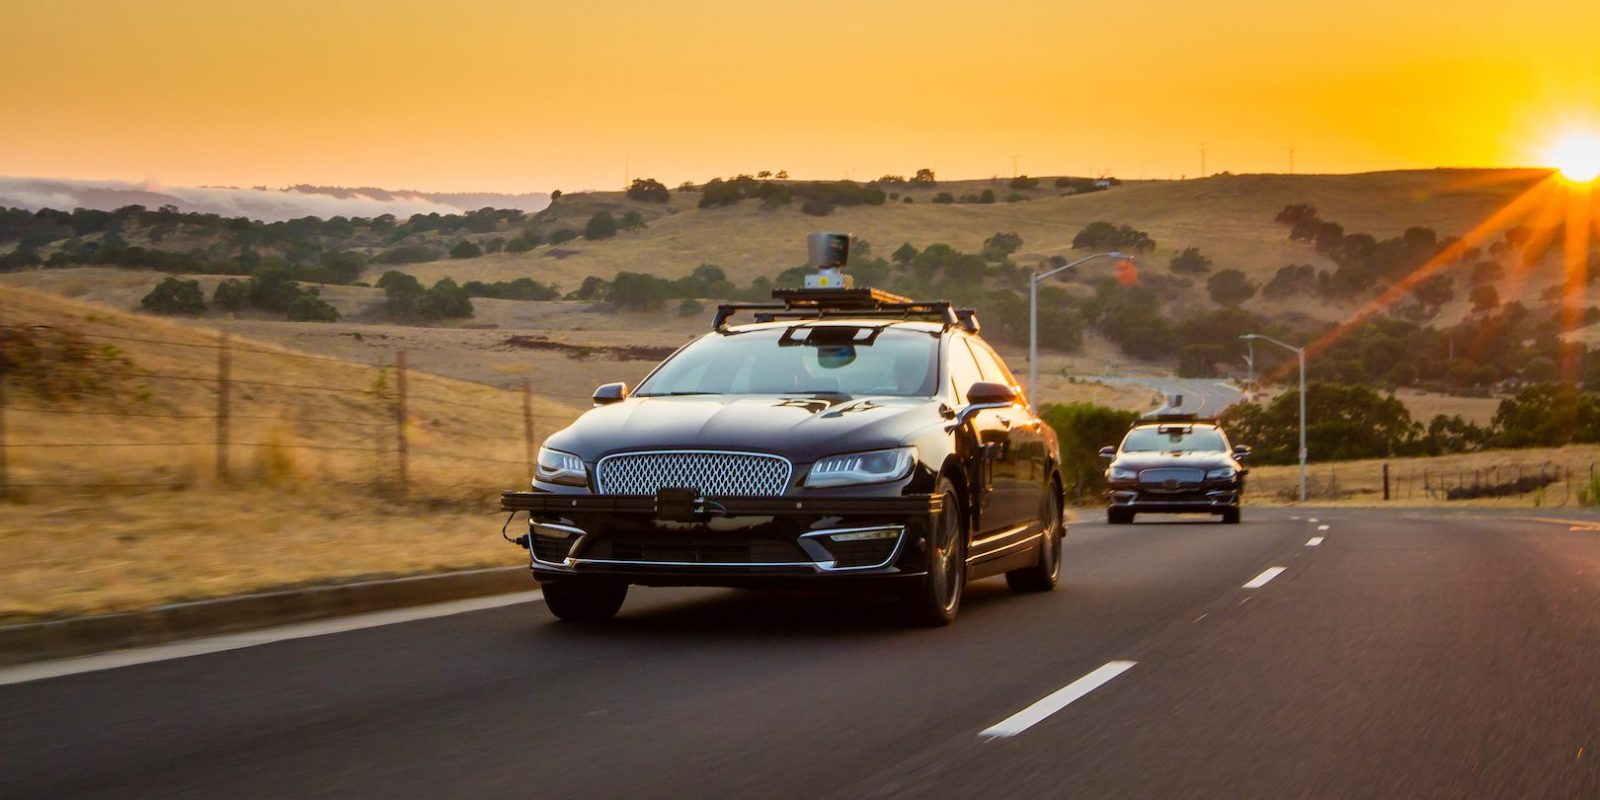 Self-driving startup Aurora undergoing major expansion, moving headquarters, report says